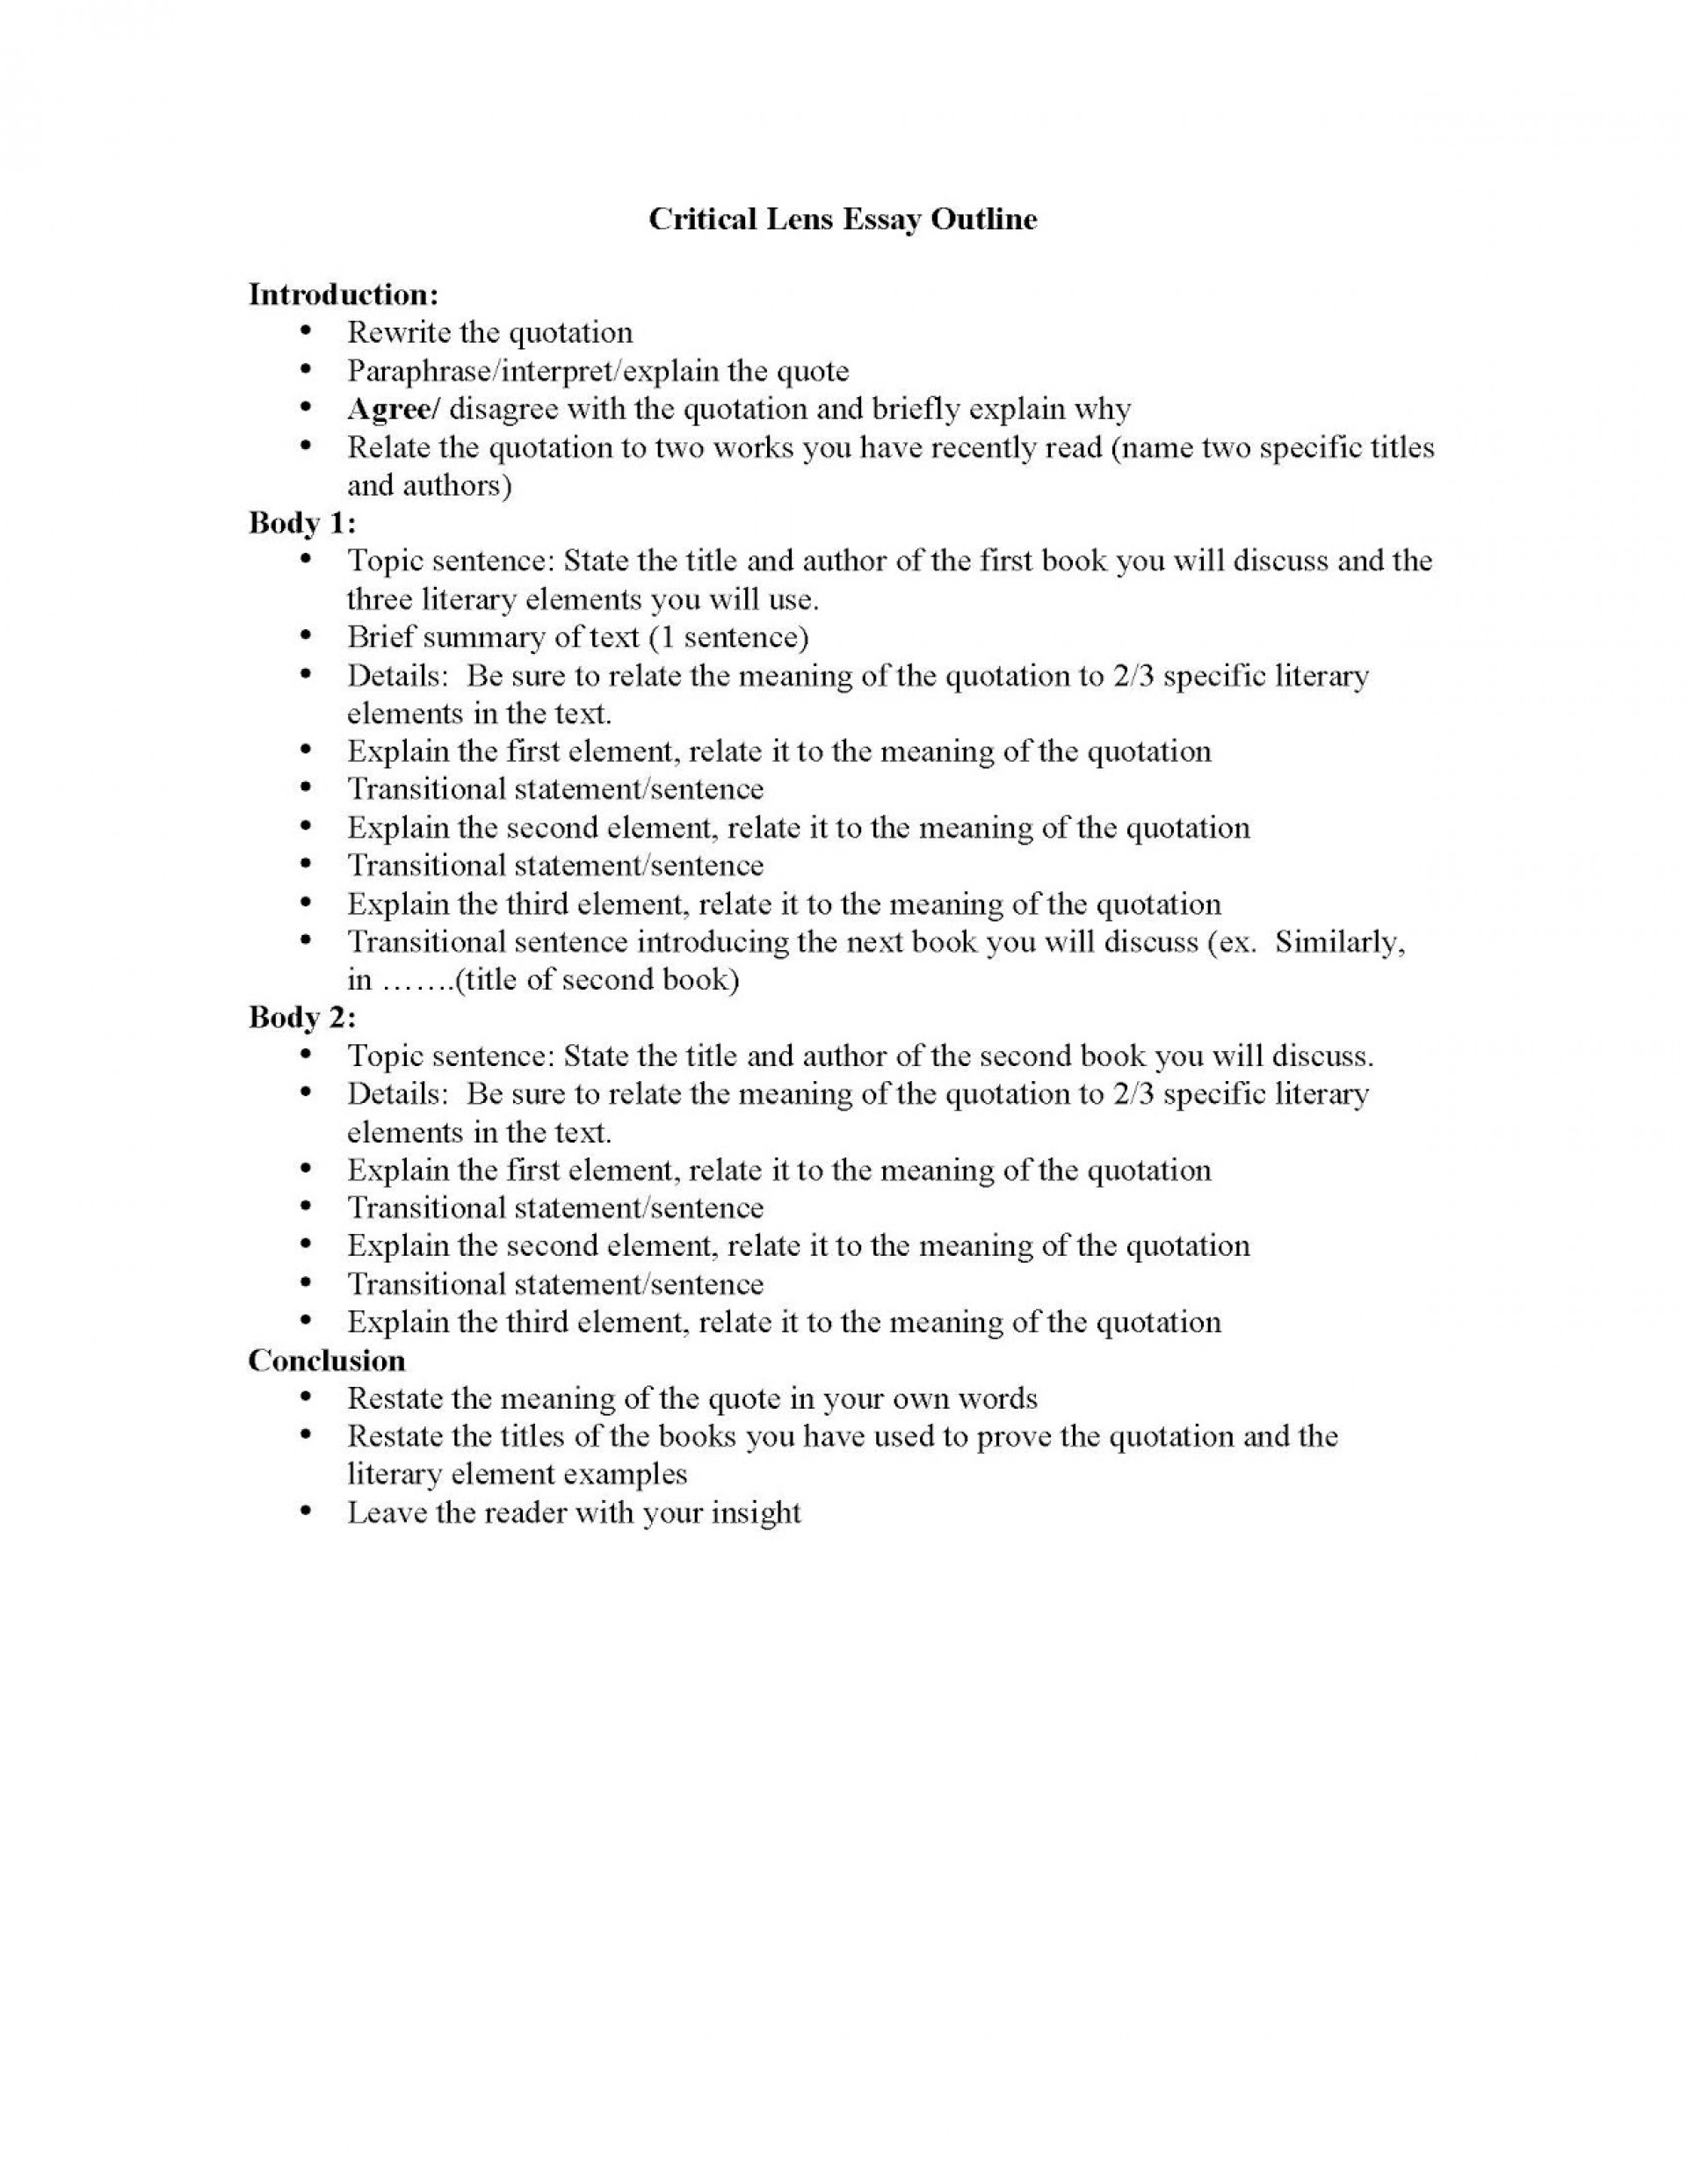 011 Outline For Argumentative Essay Example Criticallensessayoutlineandliterayelements Page 1 Archaicawful On Gun Control Sample 1920